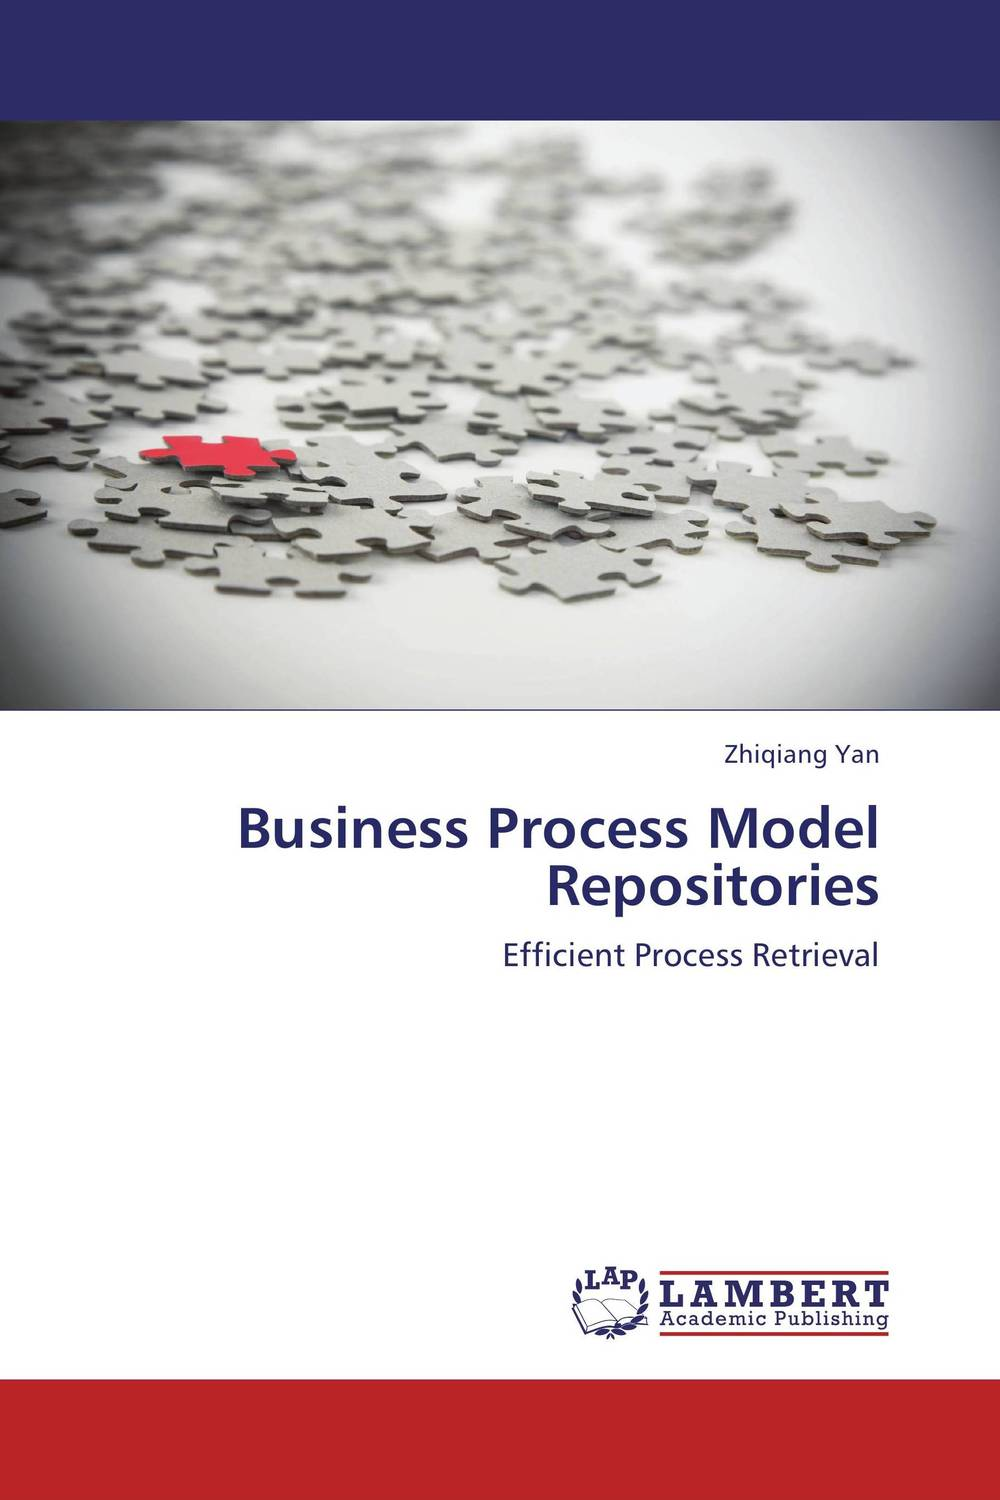 Business Process Model Repositories fertilization process simulator model egg fertilization process model